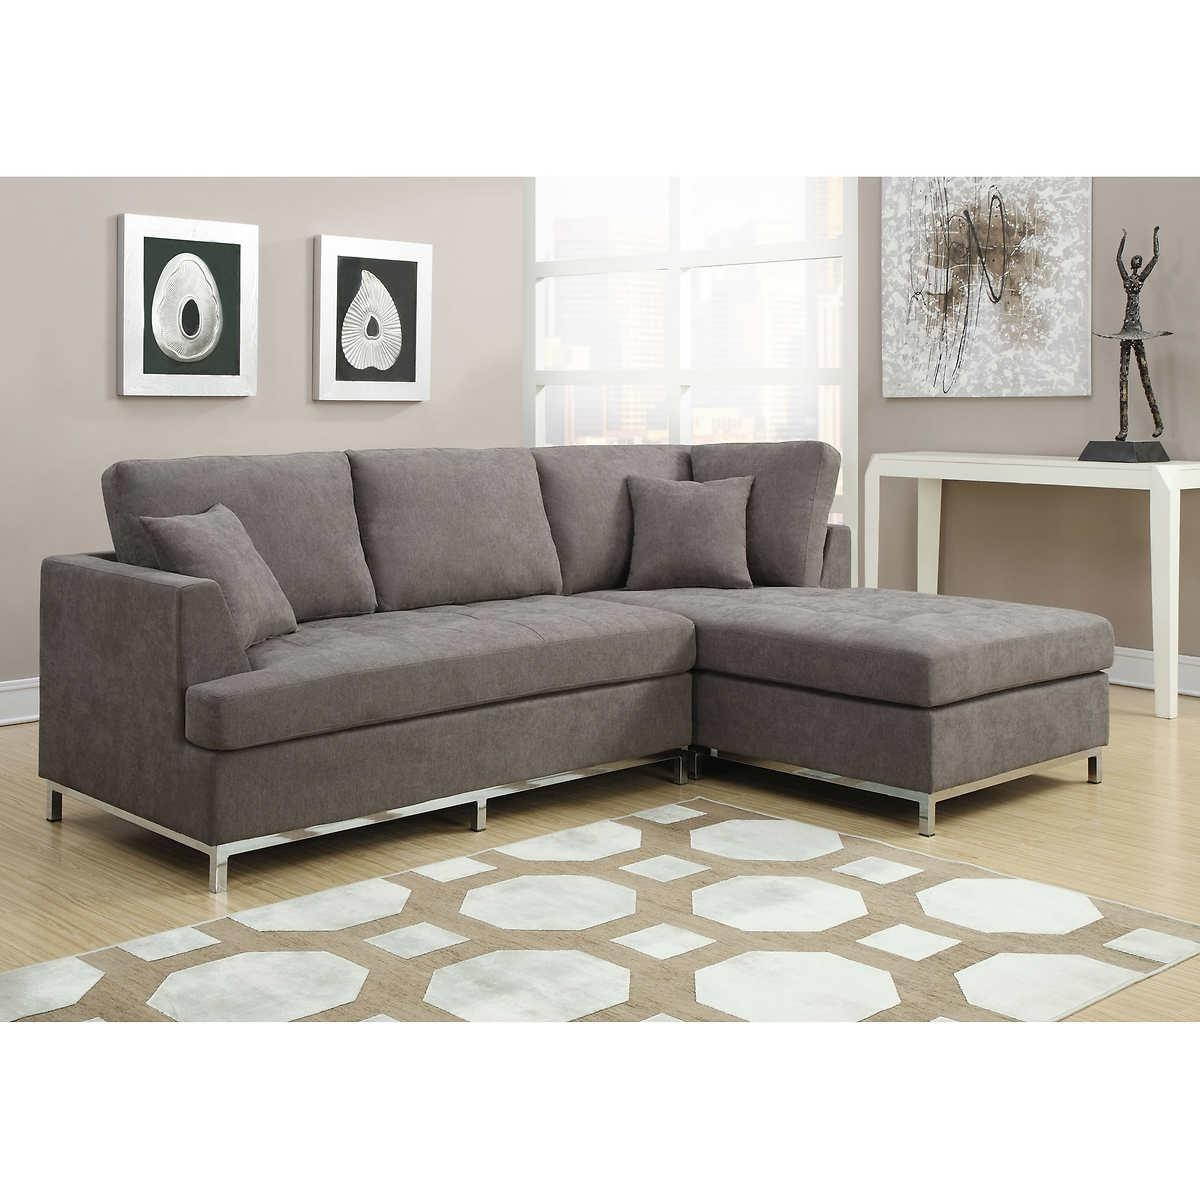 Sectional Sofa With Chaise Costco | Tehranmix Decoration Pertaining To Berkline Sectional Sofas (View 19 of 20)